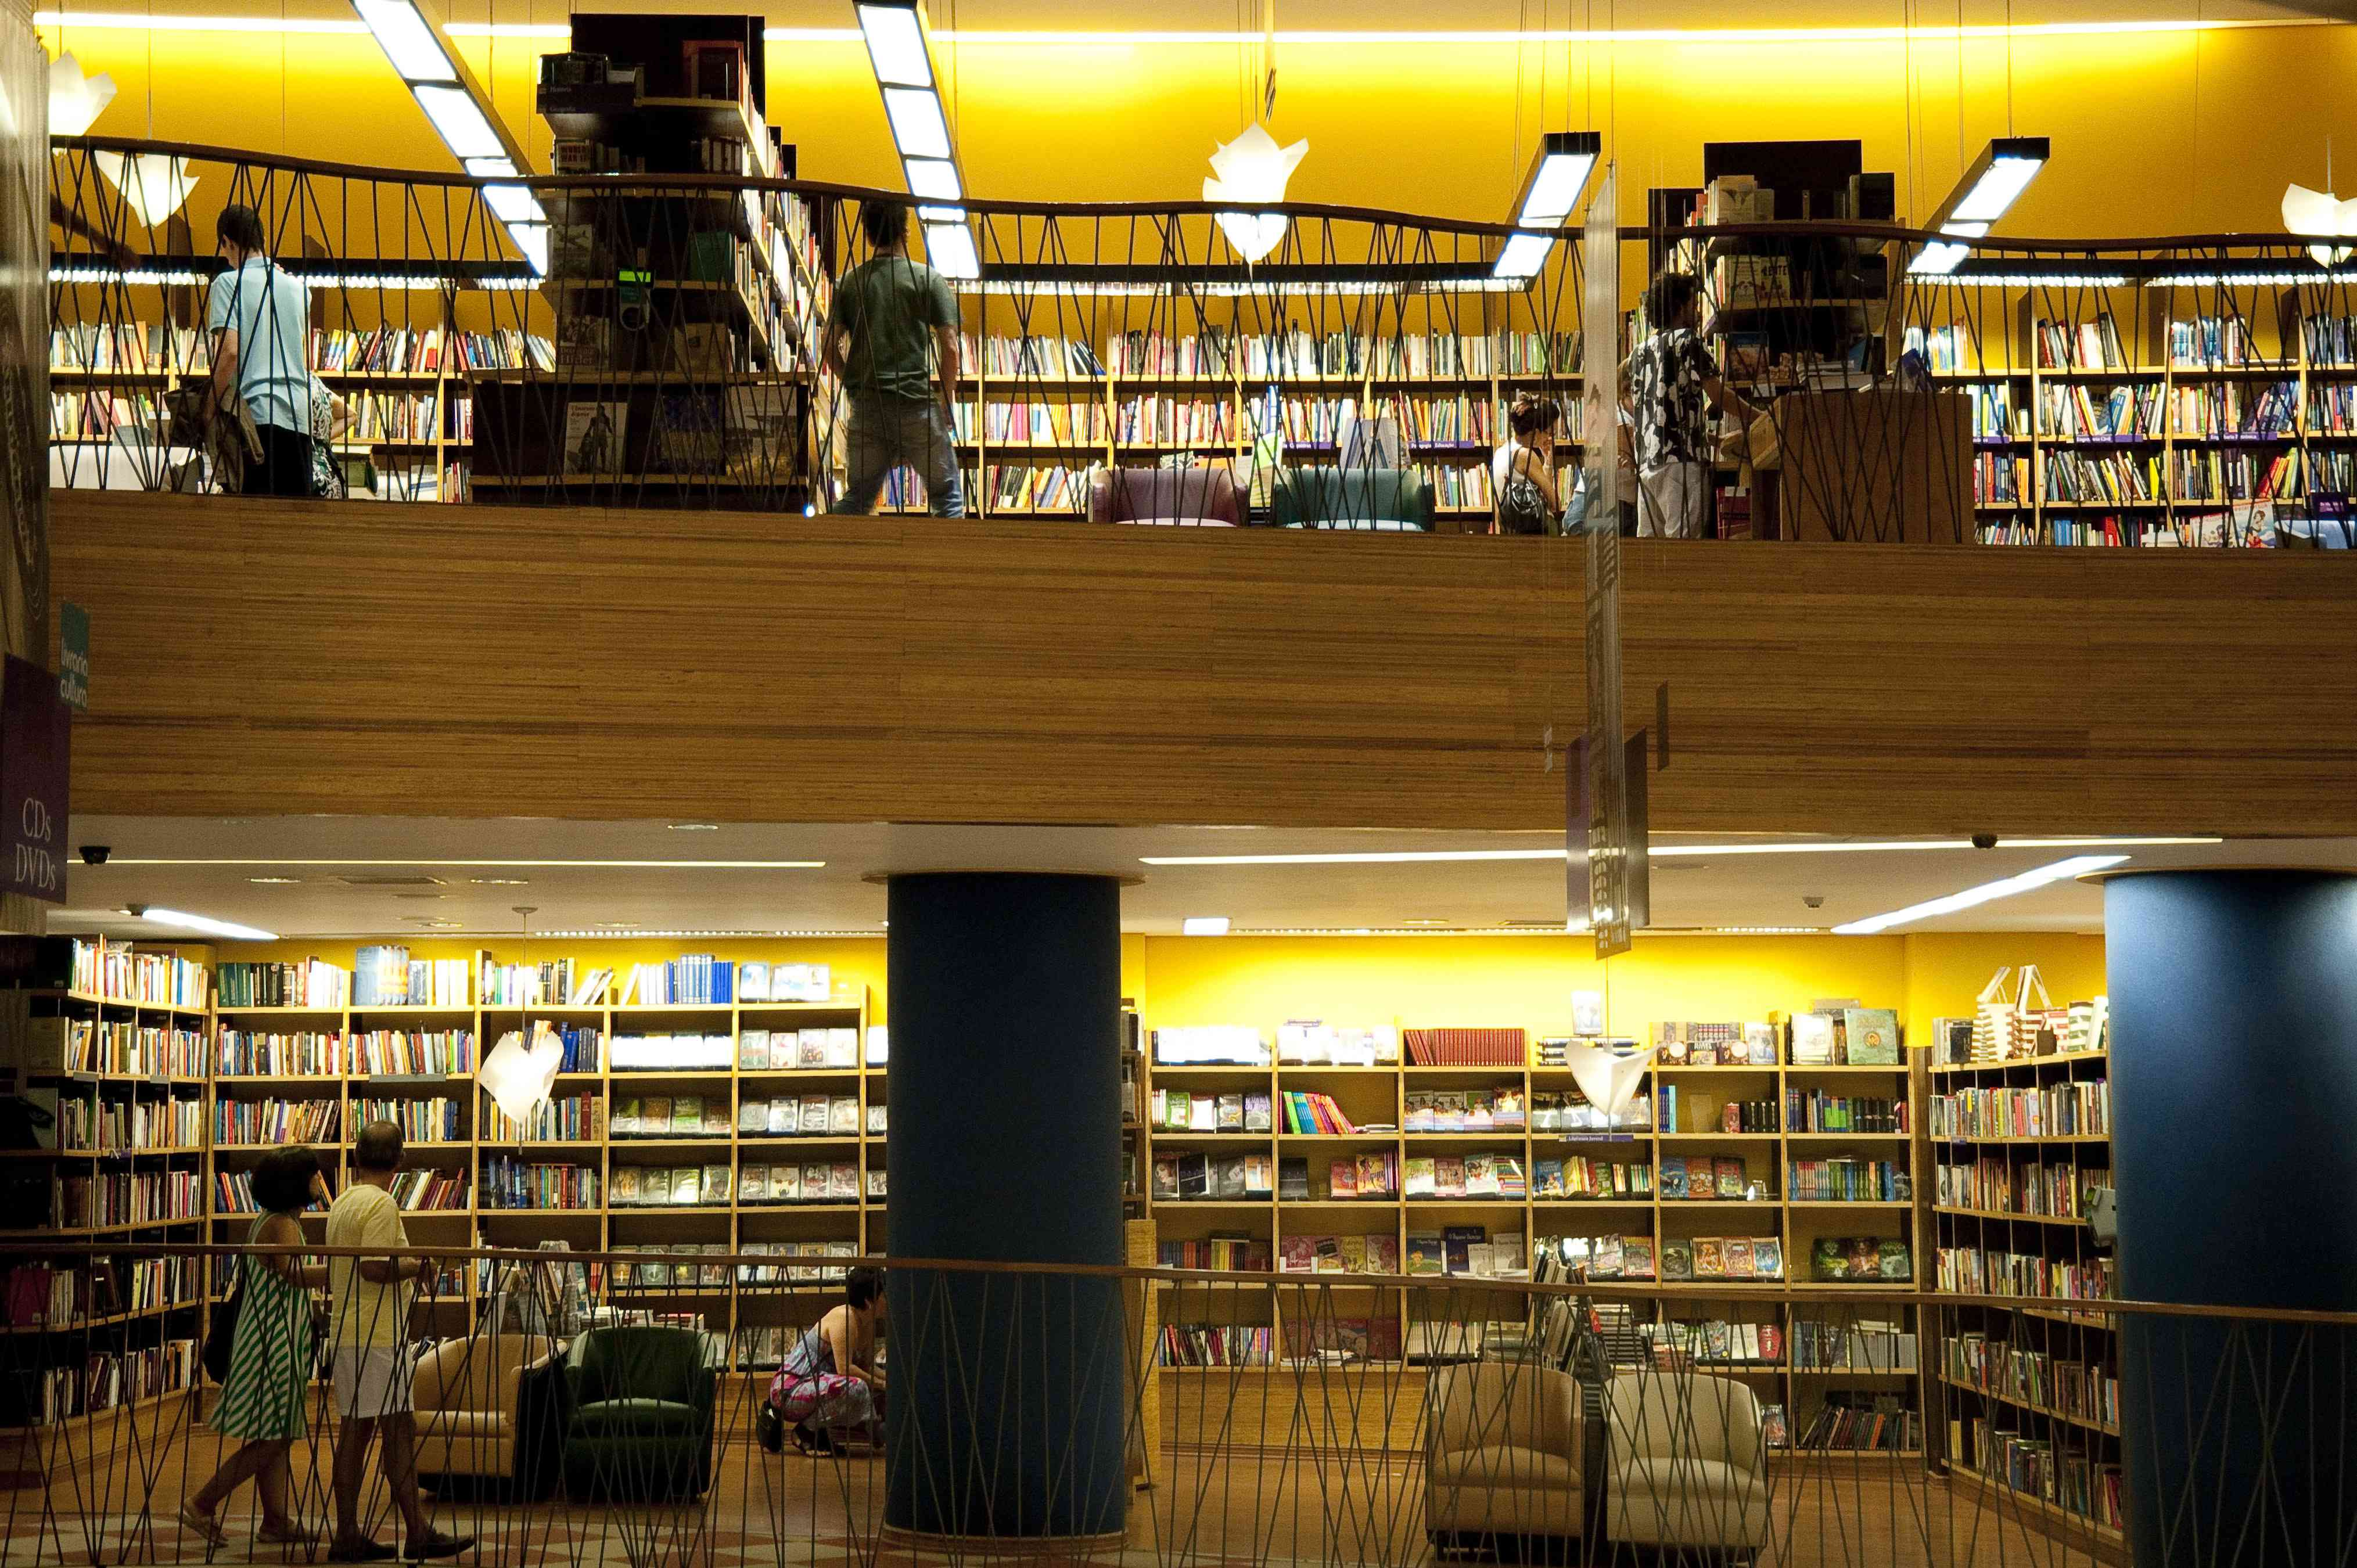 interior view of a two-level bookstore